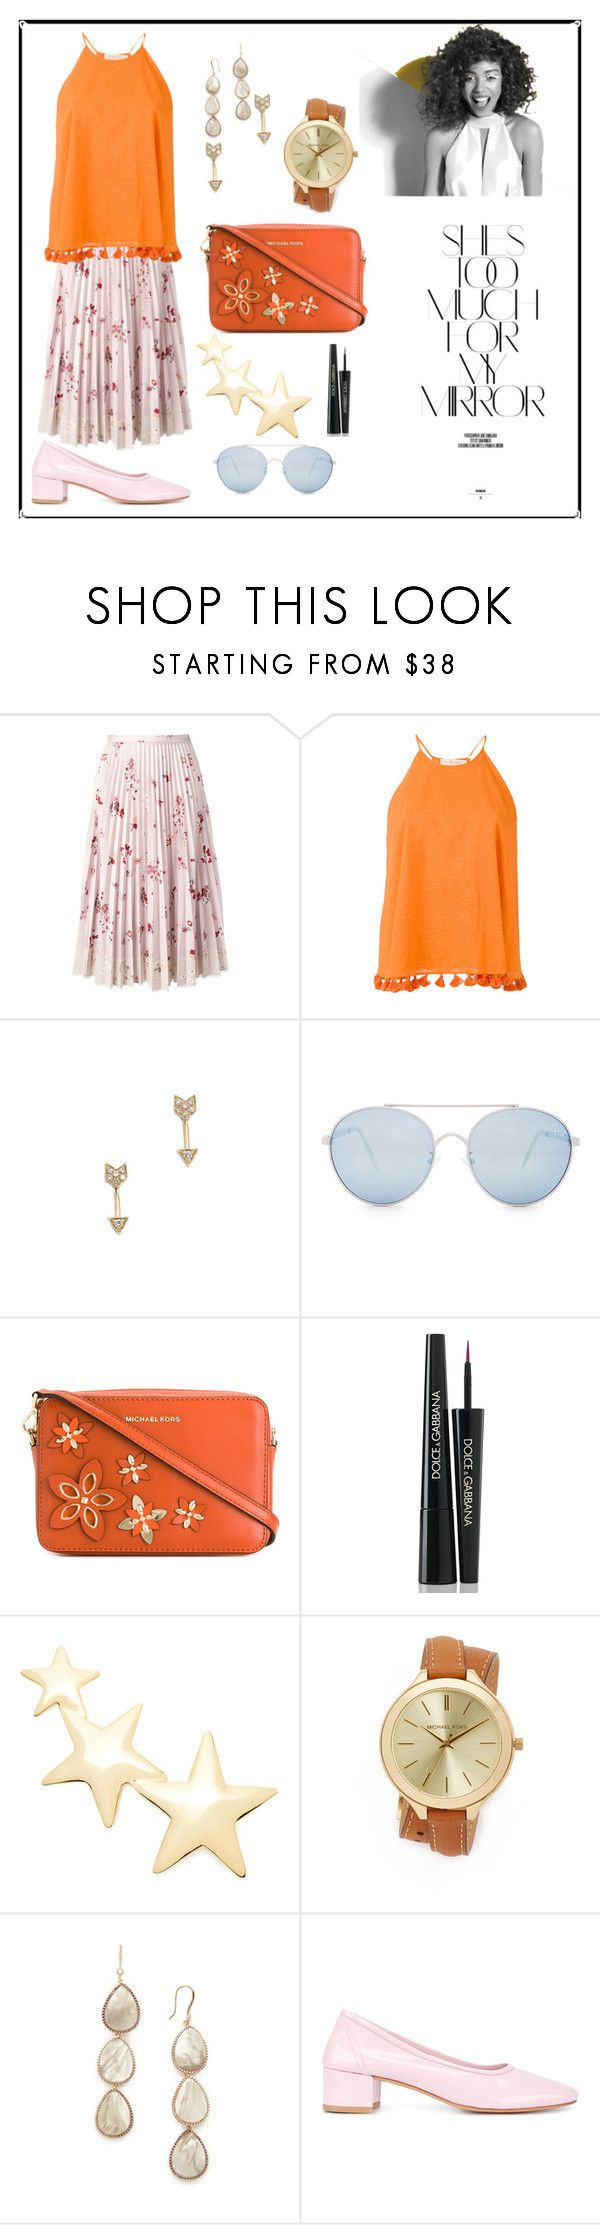 """""""she's too much¶"""" by racheal-taylor ❤ liked on Polyvore featuring RED Valentino, Tory Burch, EF Collection, Quay, MICHAEL Michael Kors, Dolce&Gabbana, Kenneth Jay Lane, Michael Kors, Theia Jewelry and Maryam Nassir Zadeh"""